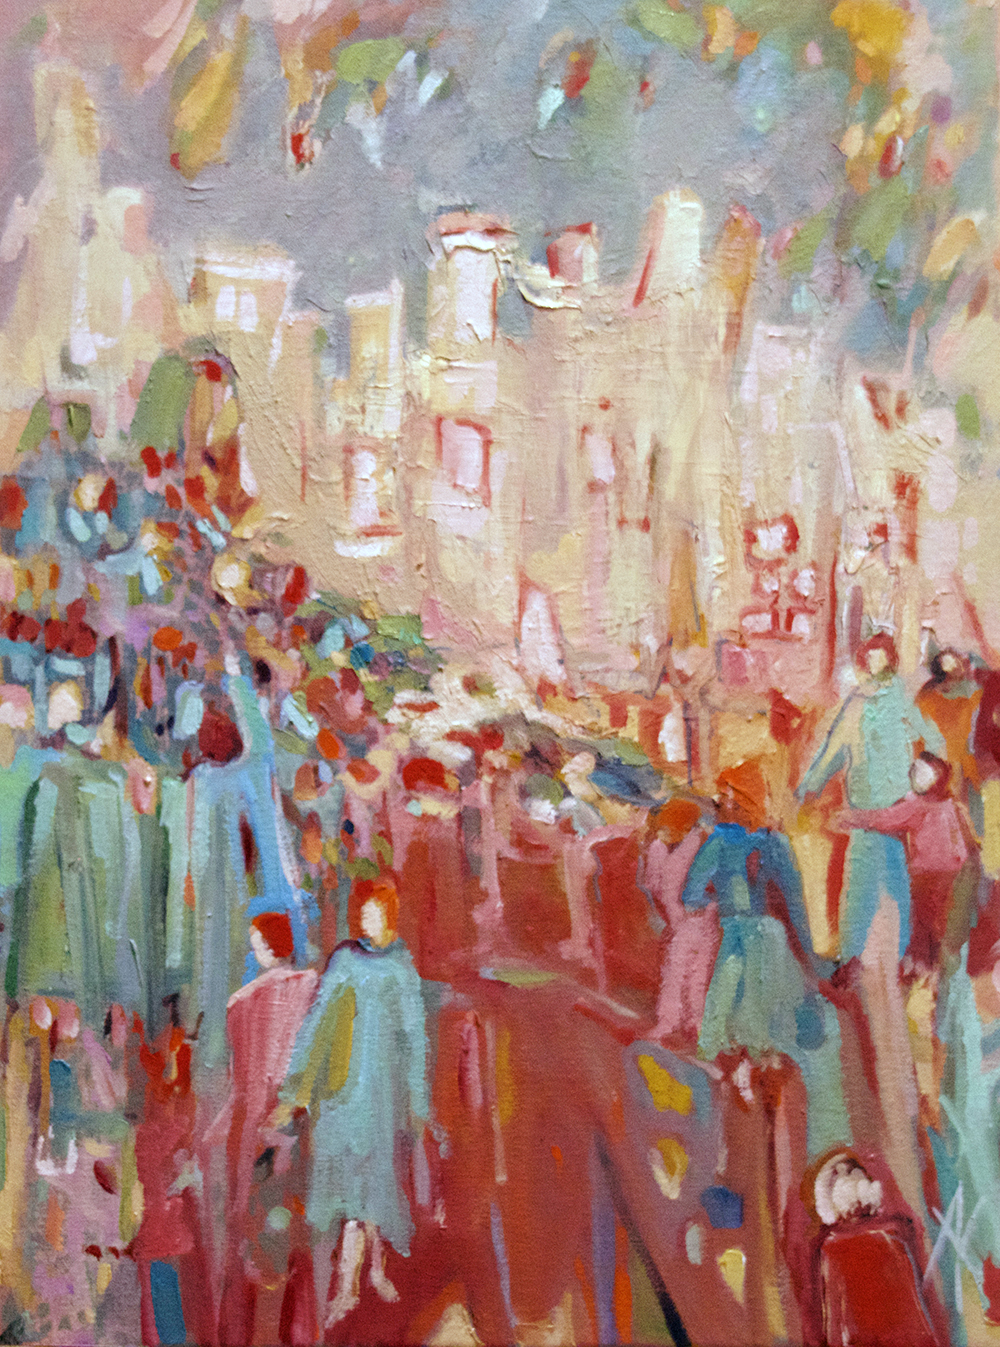 TITLE:  Market day  MEDIUM: Oil and encaustic on canvas DIMENSIONS: H50 x W38cm